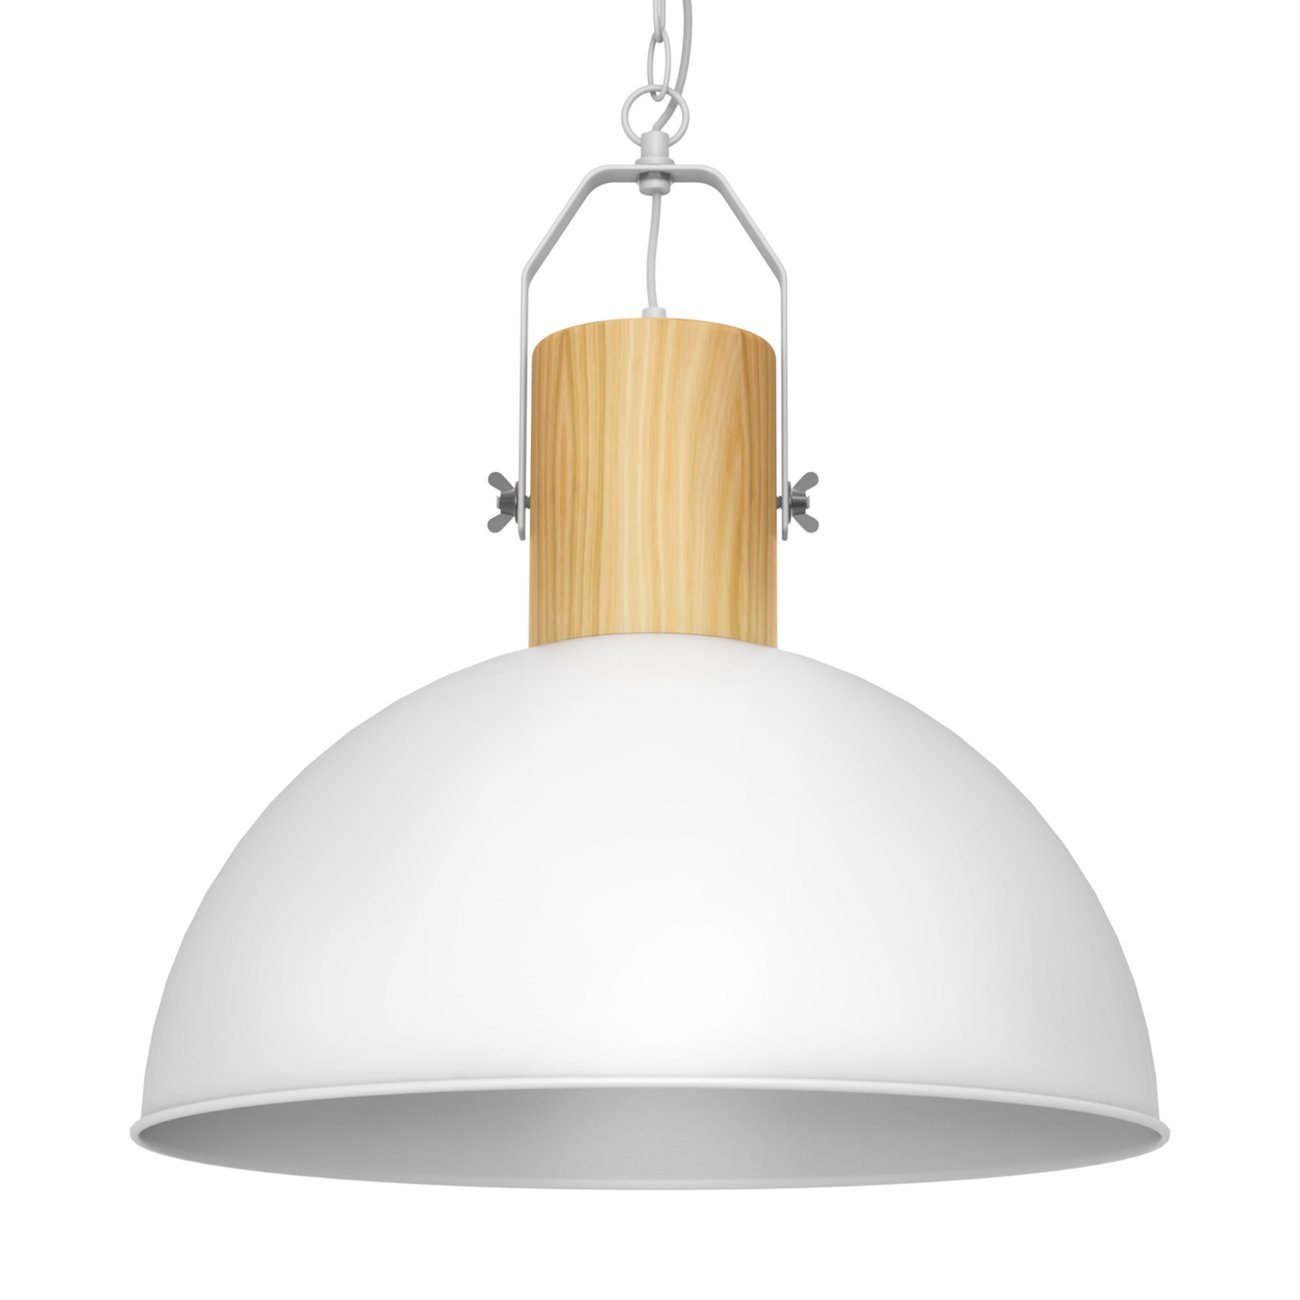 Tomons Wood Pendant Light, Modern Simple Ceiling Lightning with Metal Lampshade for Kitchen Island, Restaurants, Cafeteria of Nordic, Minimalist and Other Decor Style,8W LED Bulb Included - PL1005